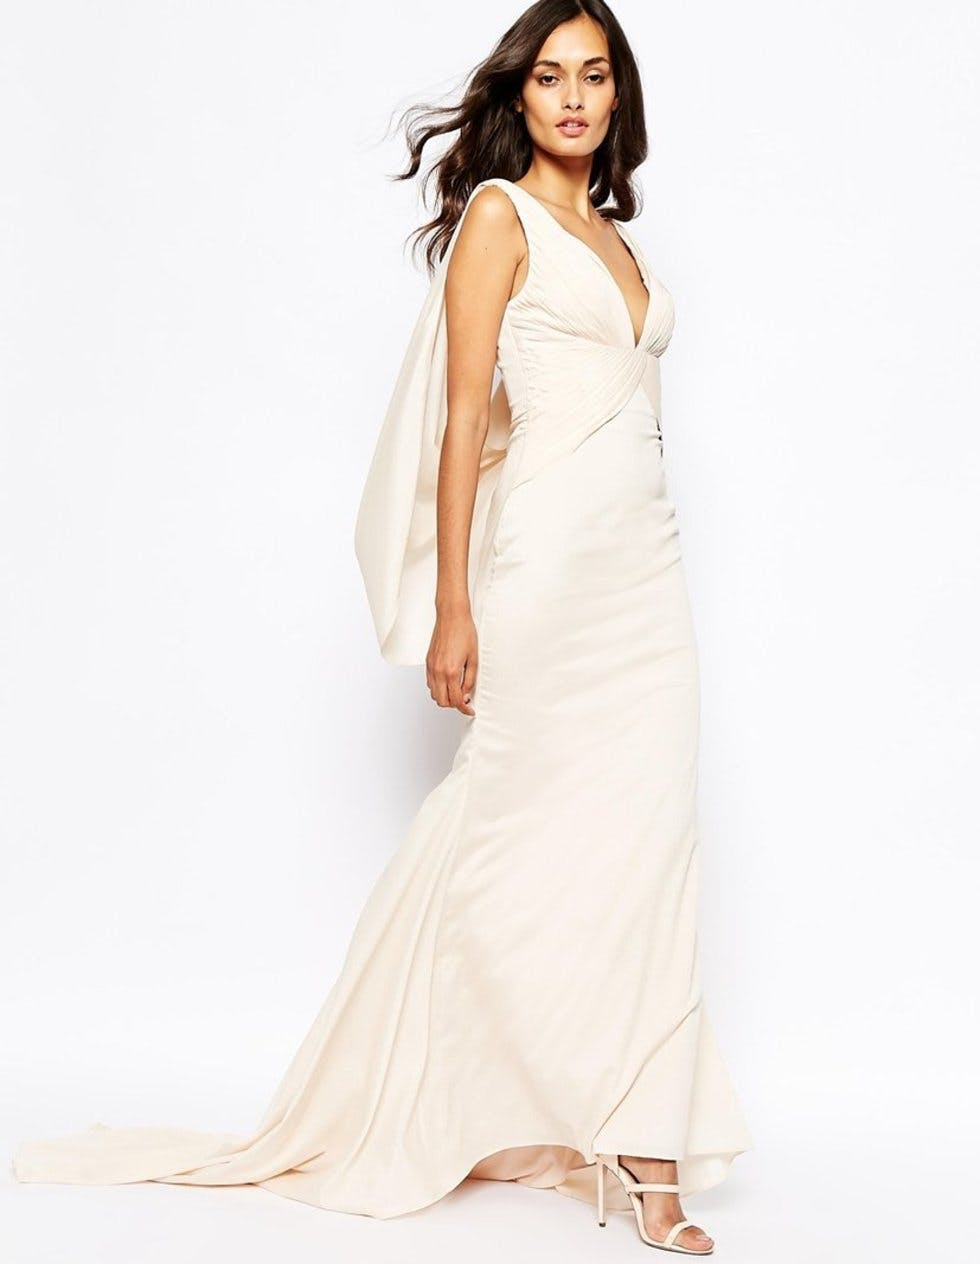 Behold the chic £150 wedding dress that\'s flying off the shelves ...